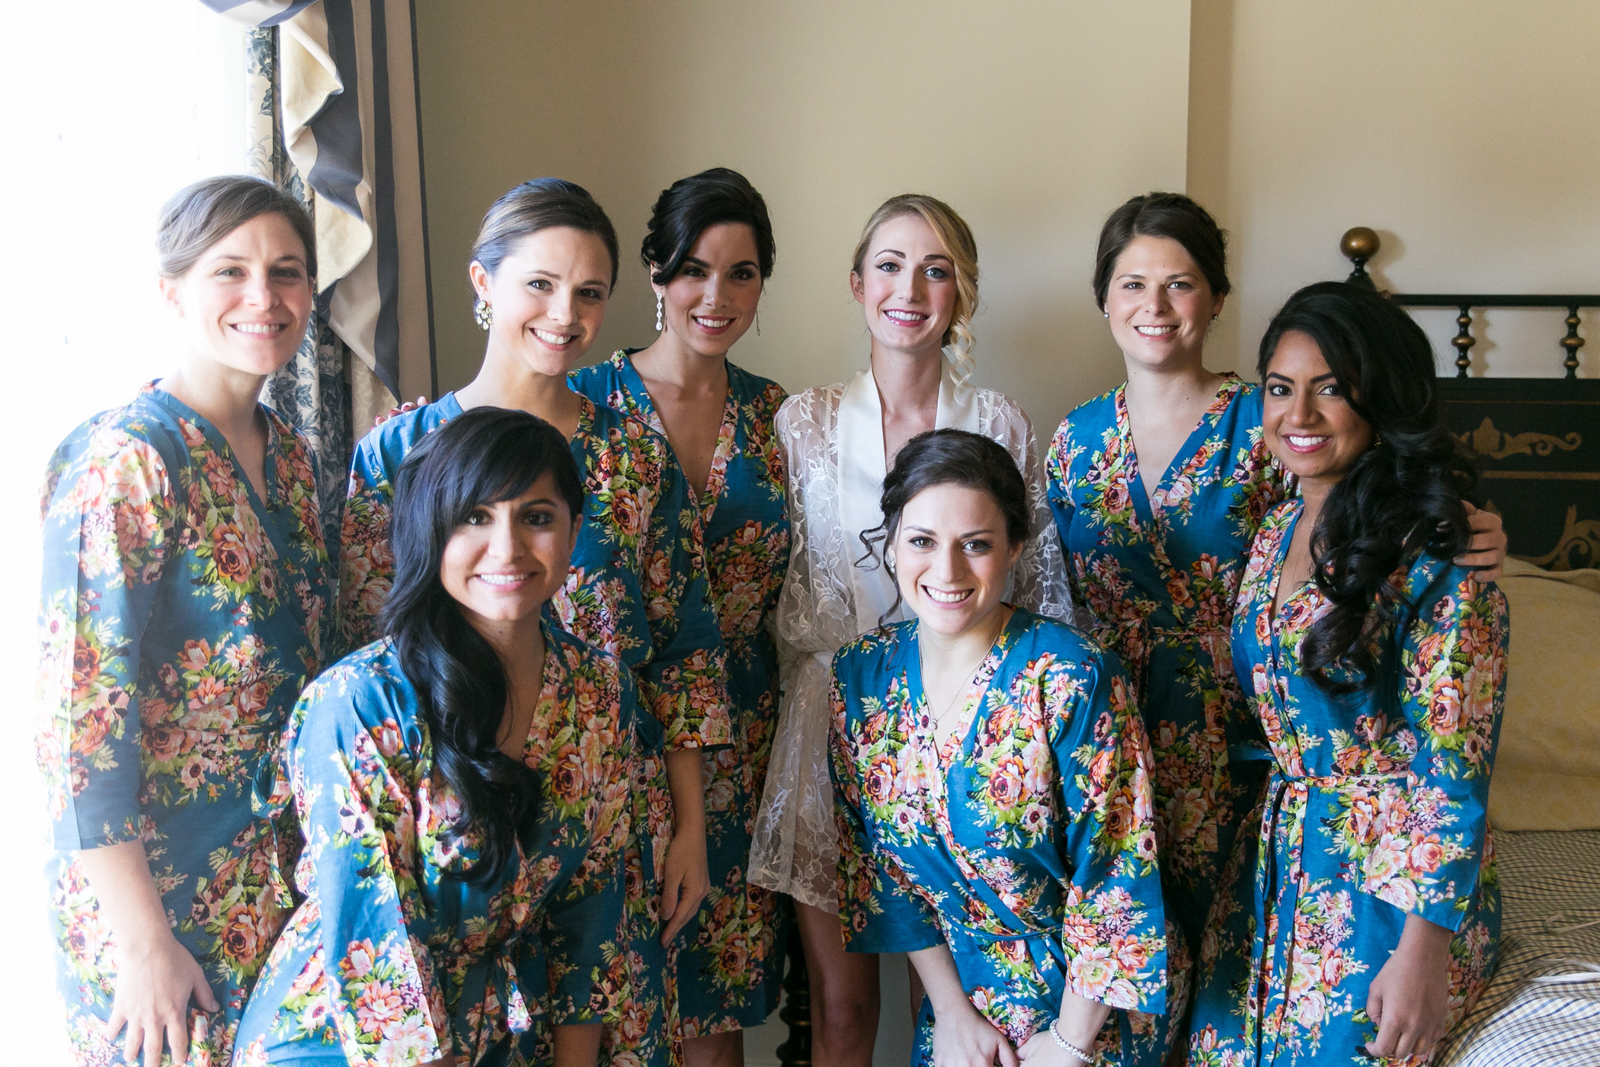 5 Cute Styles Of Robes For Your Bridesmaids